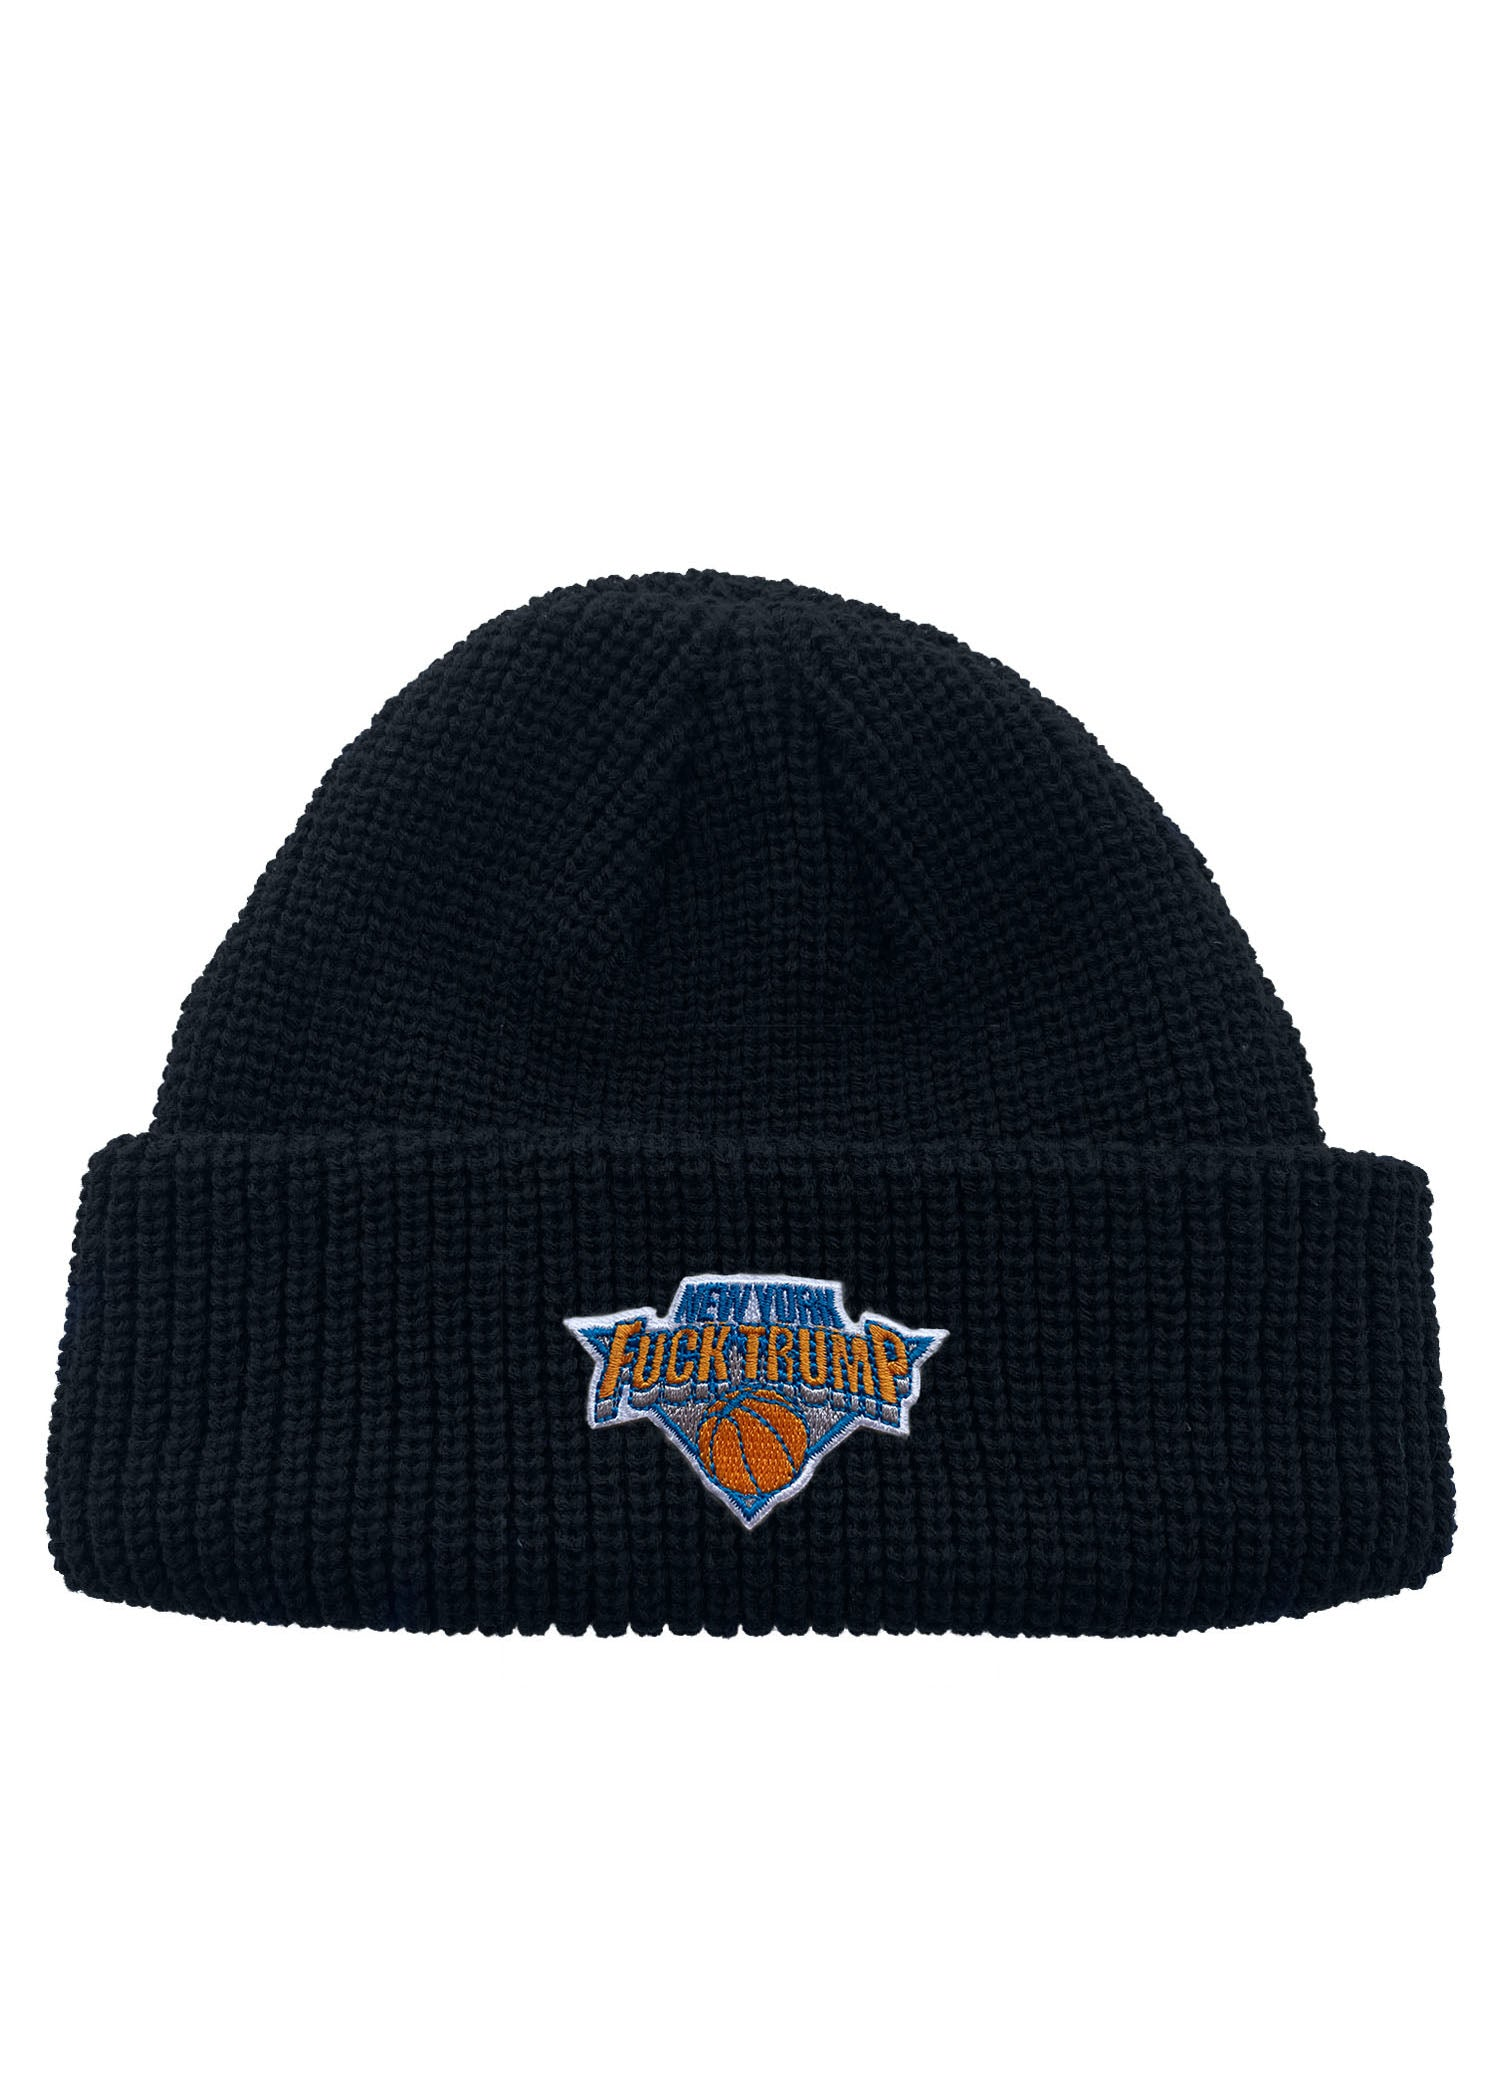 Fuck Trump NY Hoops Patch Neon Color Fisherman Knit Beanie